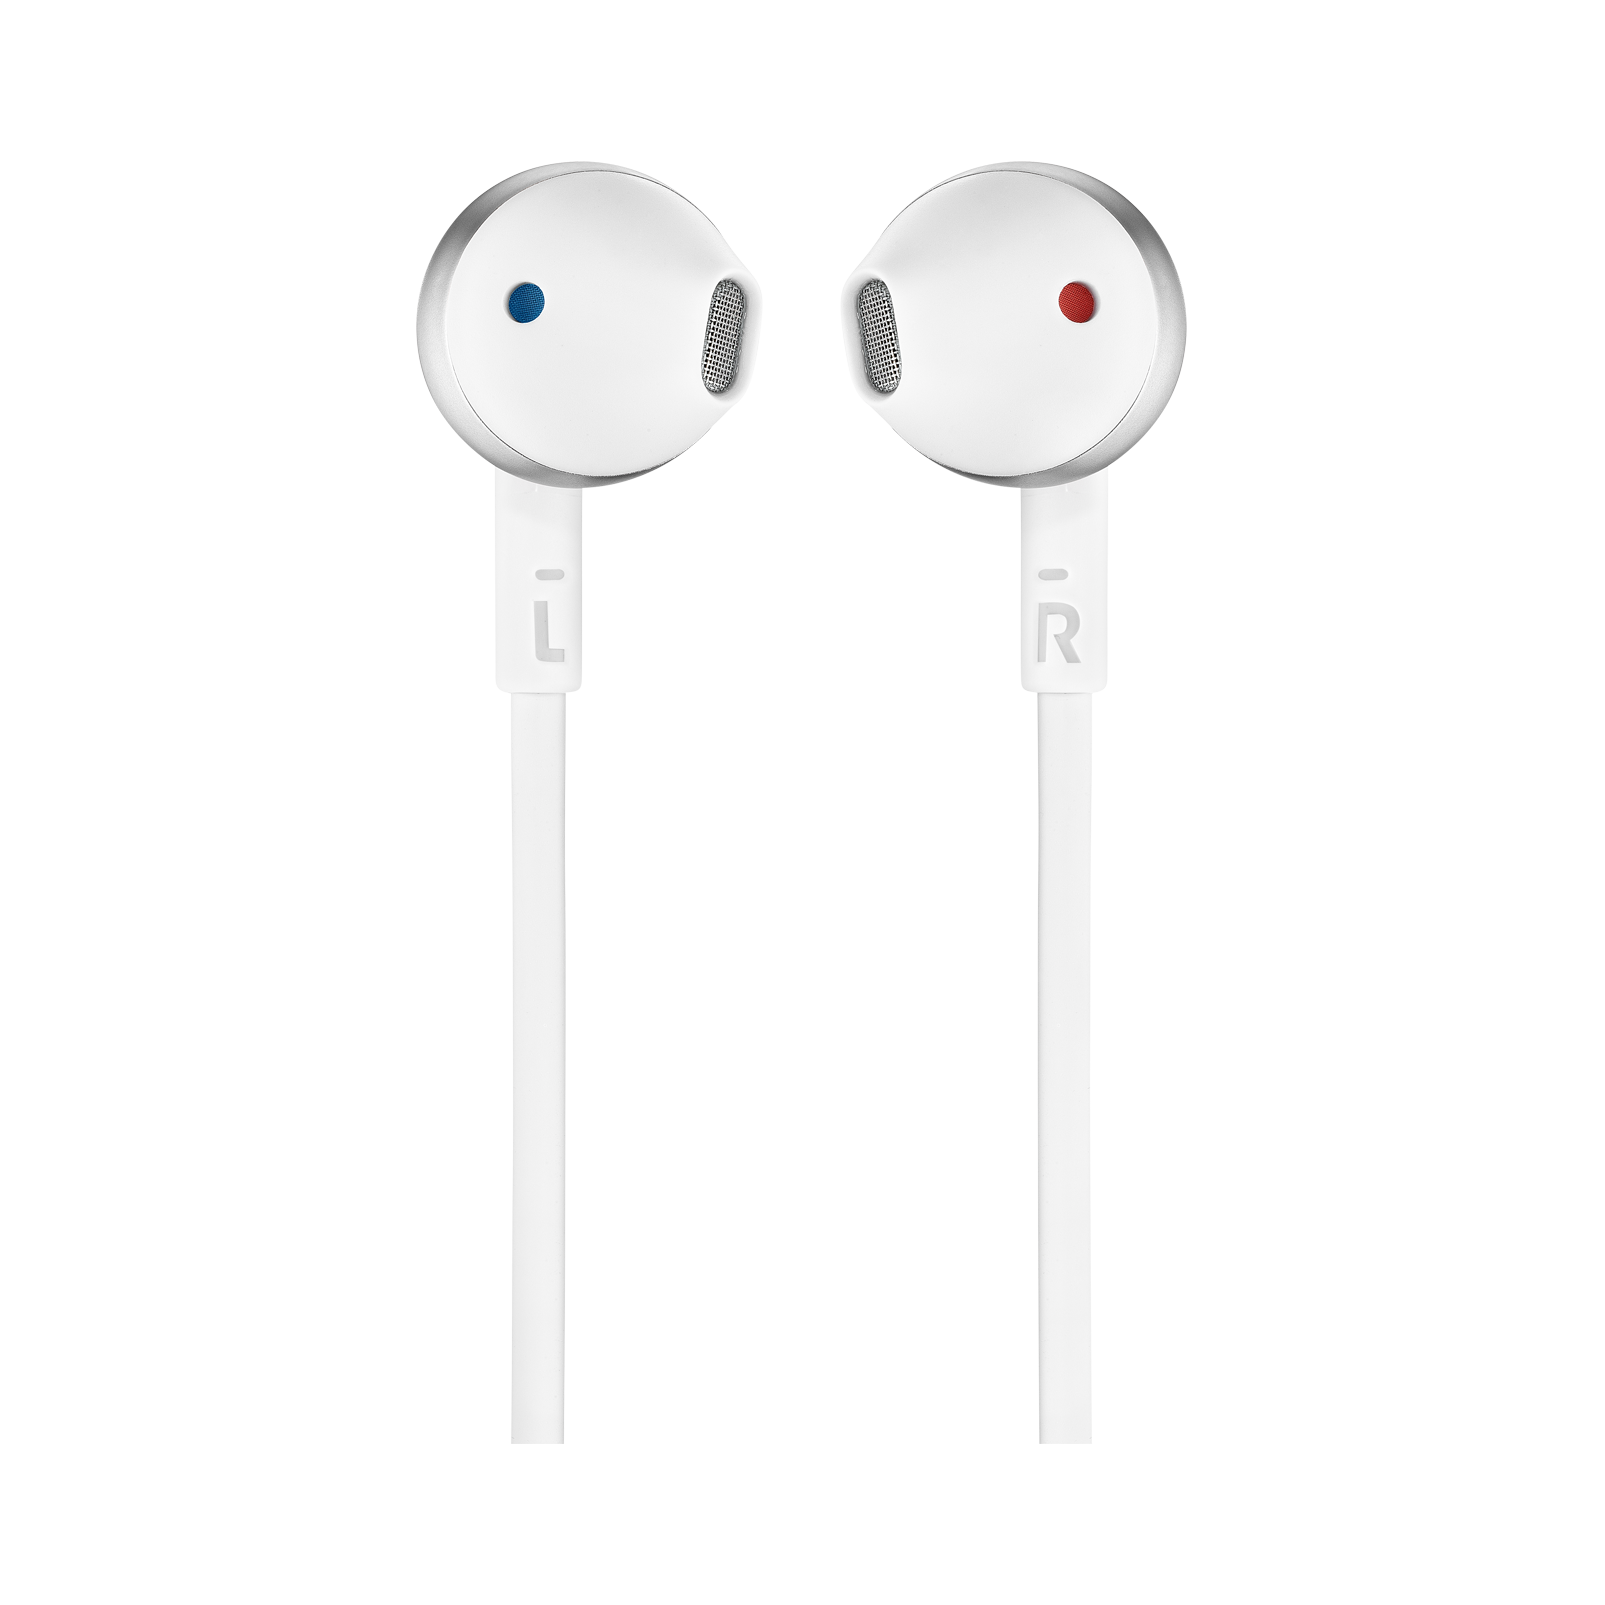 JBL TUNE 205 - Chrome - Earbud headphones - Front